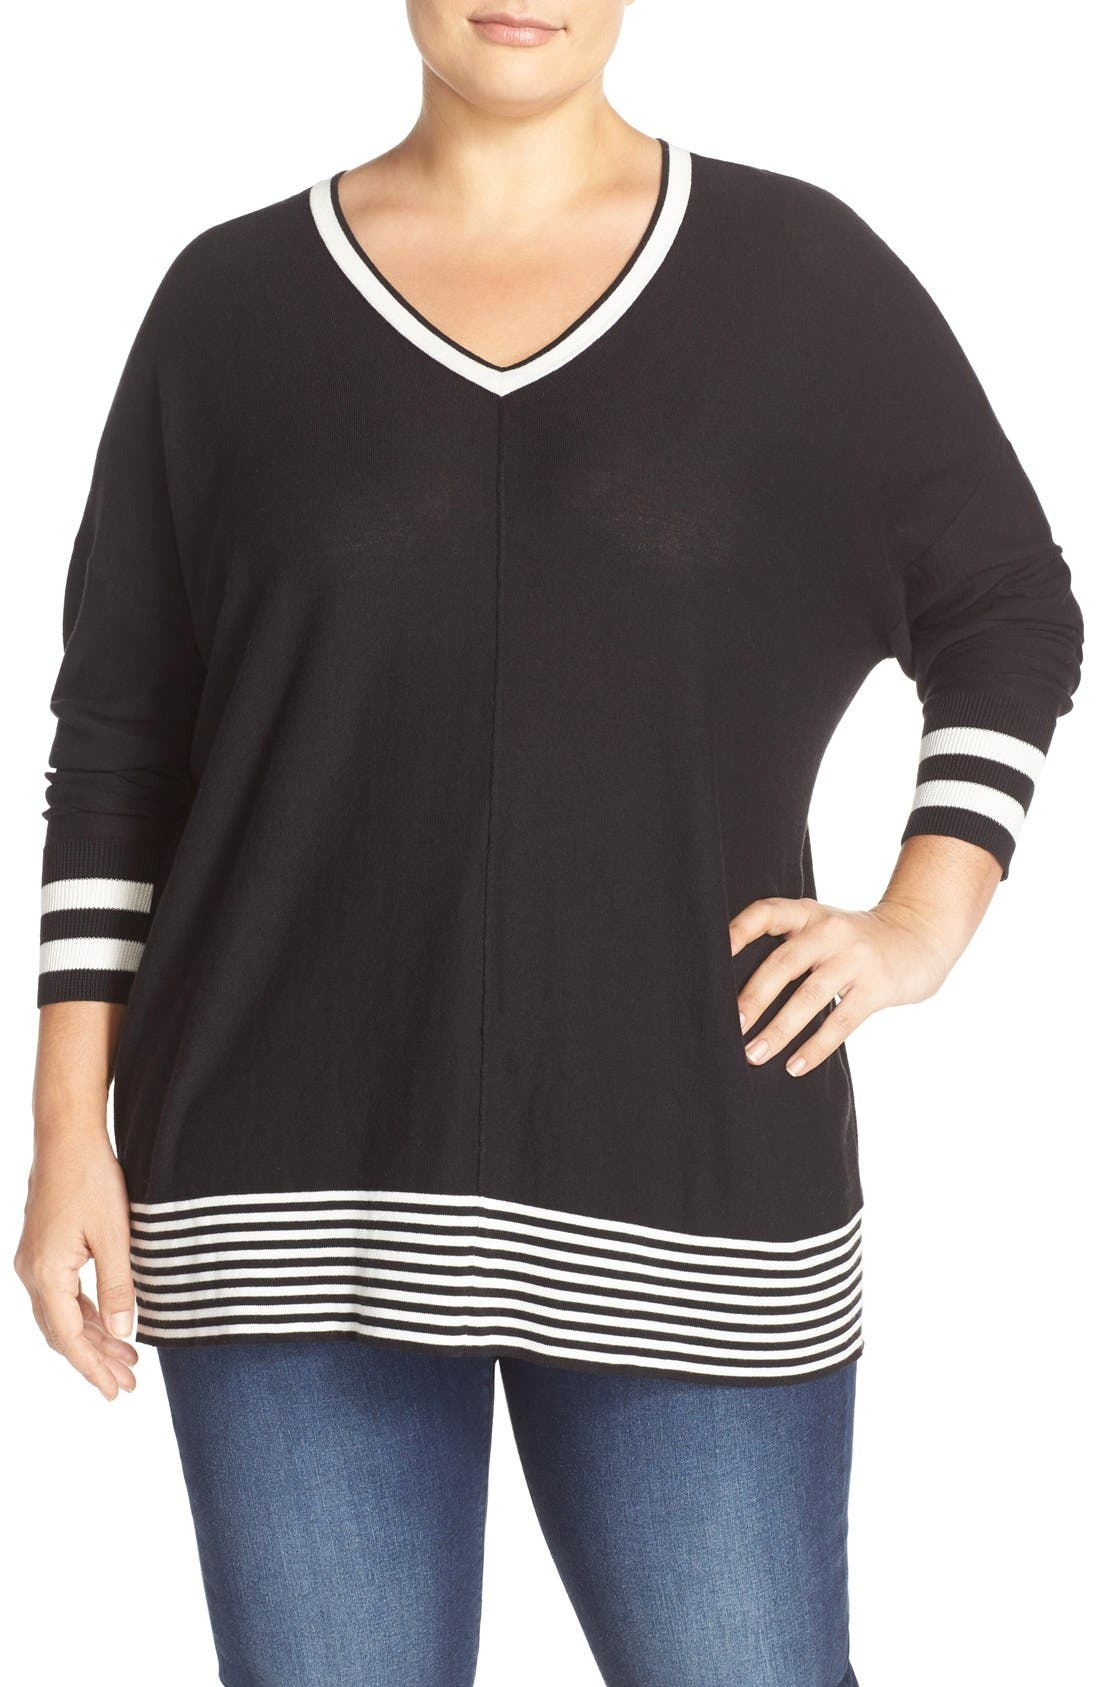 Alternate Image 1 Selected - Sejour Dolman Sleeve Wedge Sweater (Plus Size)